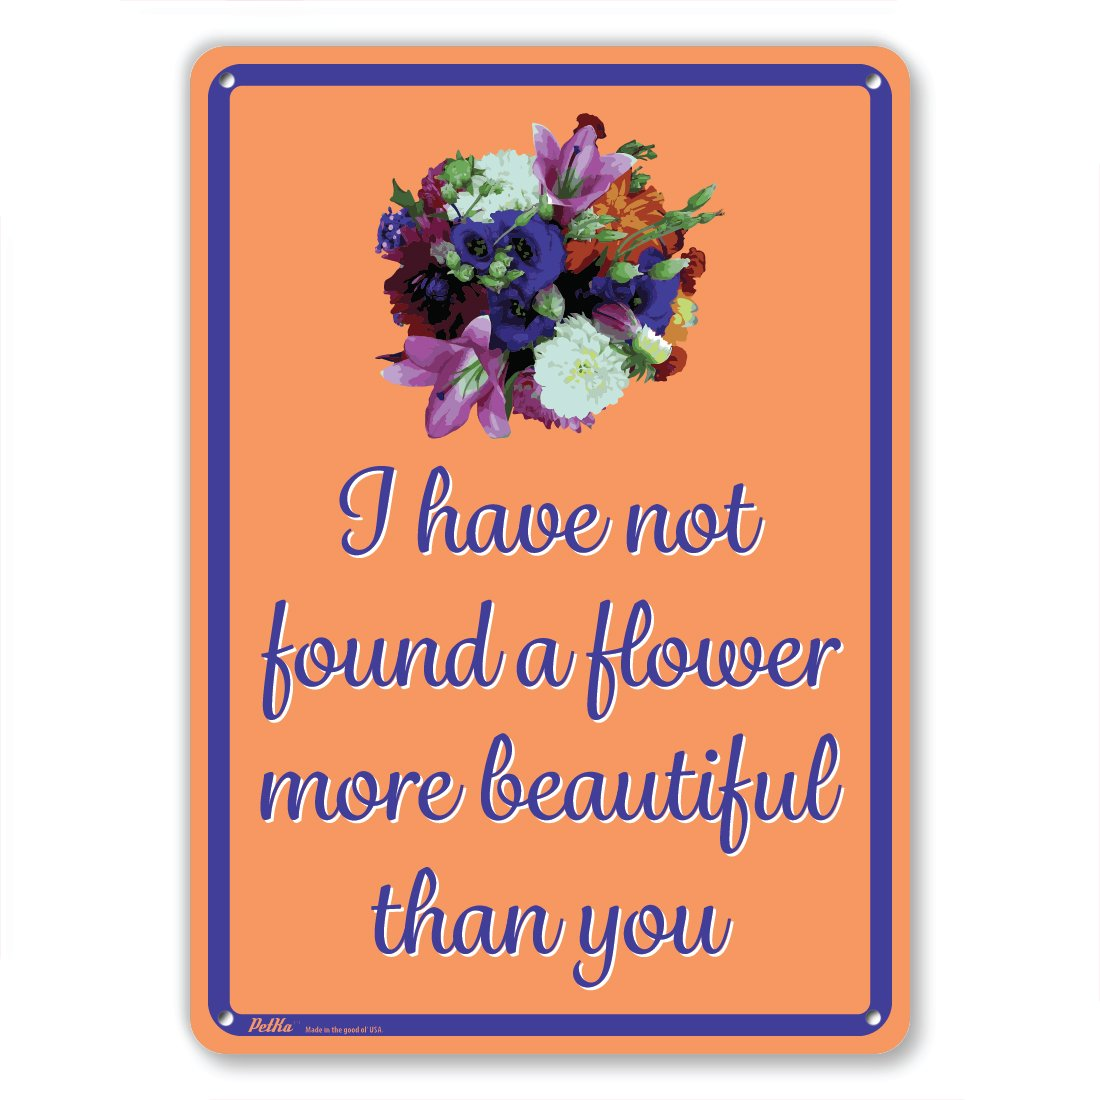 PetKa Signs and Graphics PKFW-0043-NA/_10x14I have not found a flower more beautiful than you Aluminum Sign Pink Flowers on Yellow 10 x 14